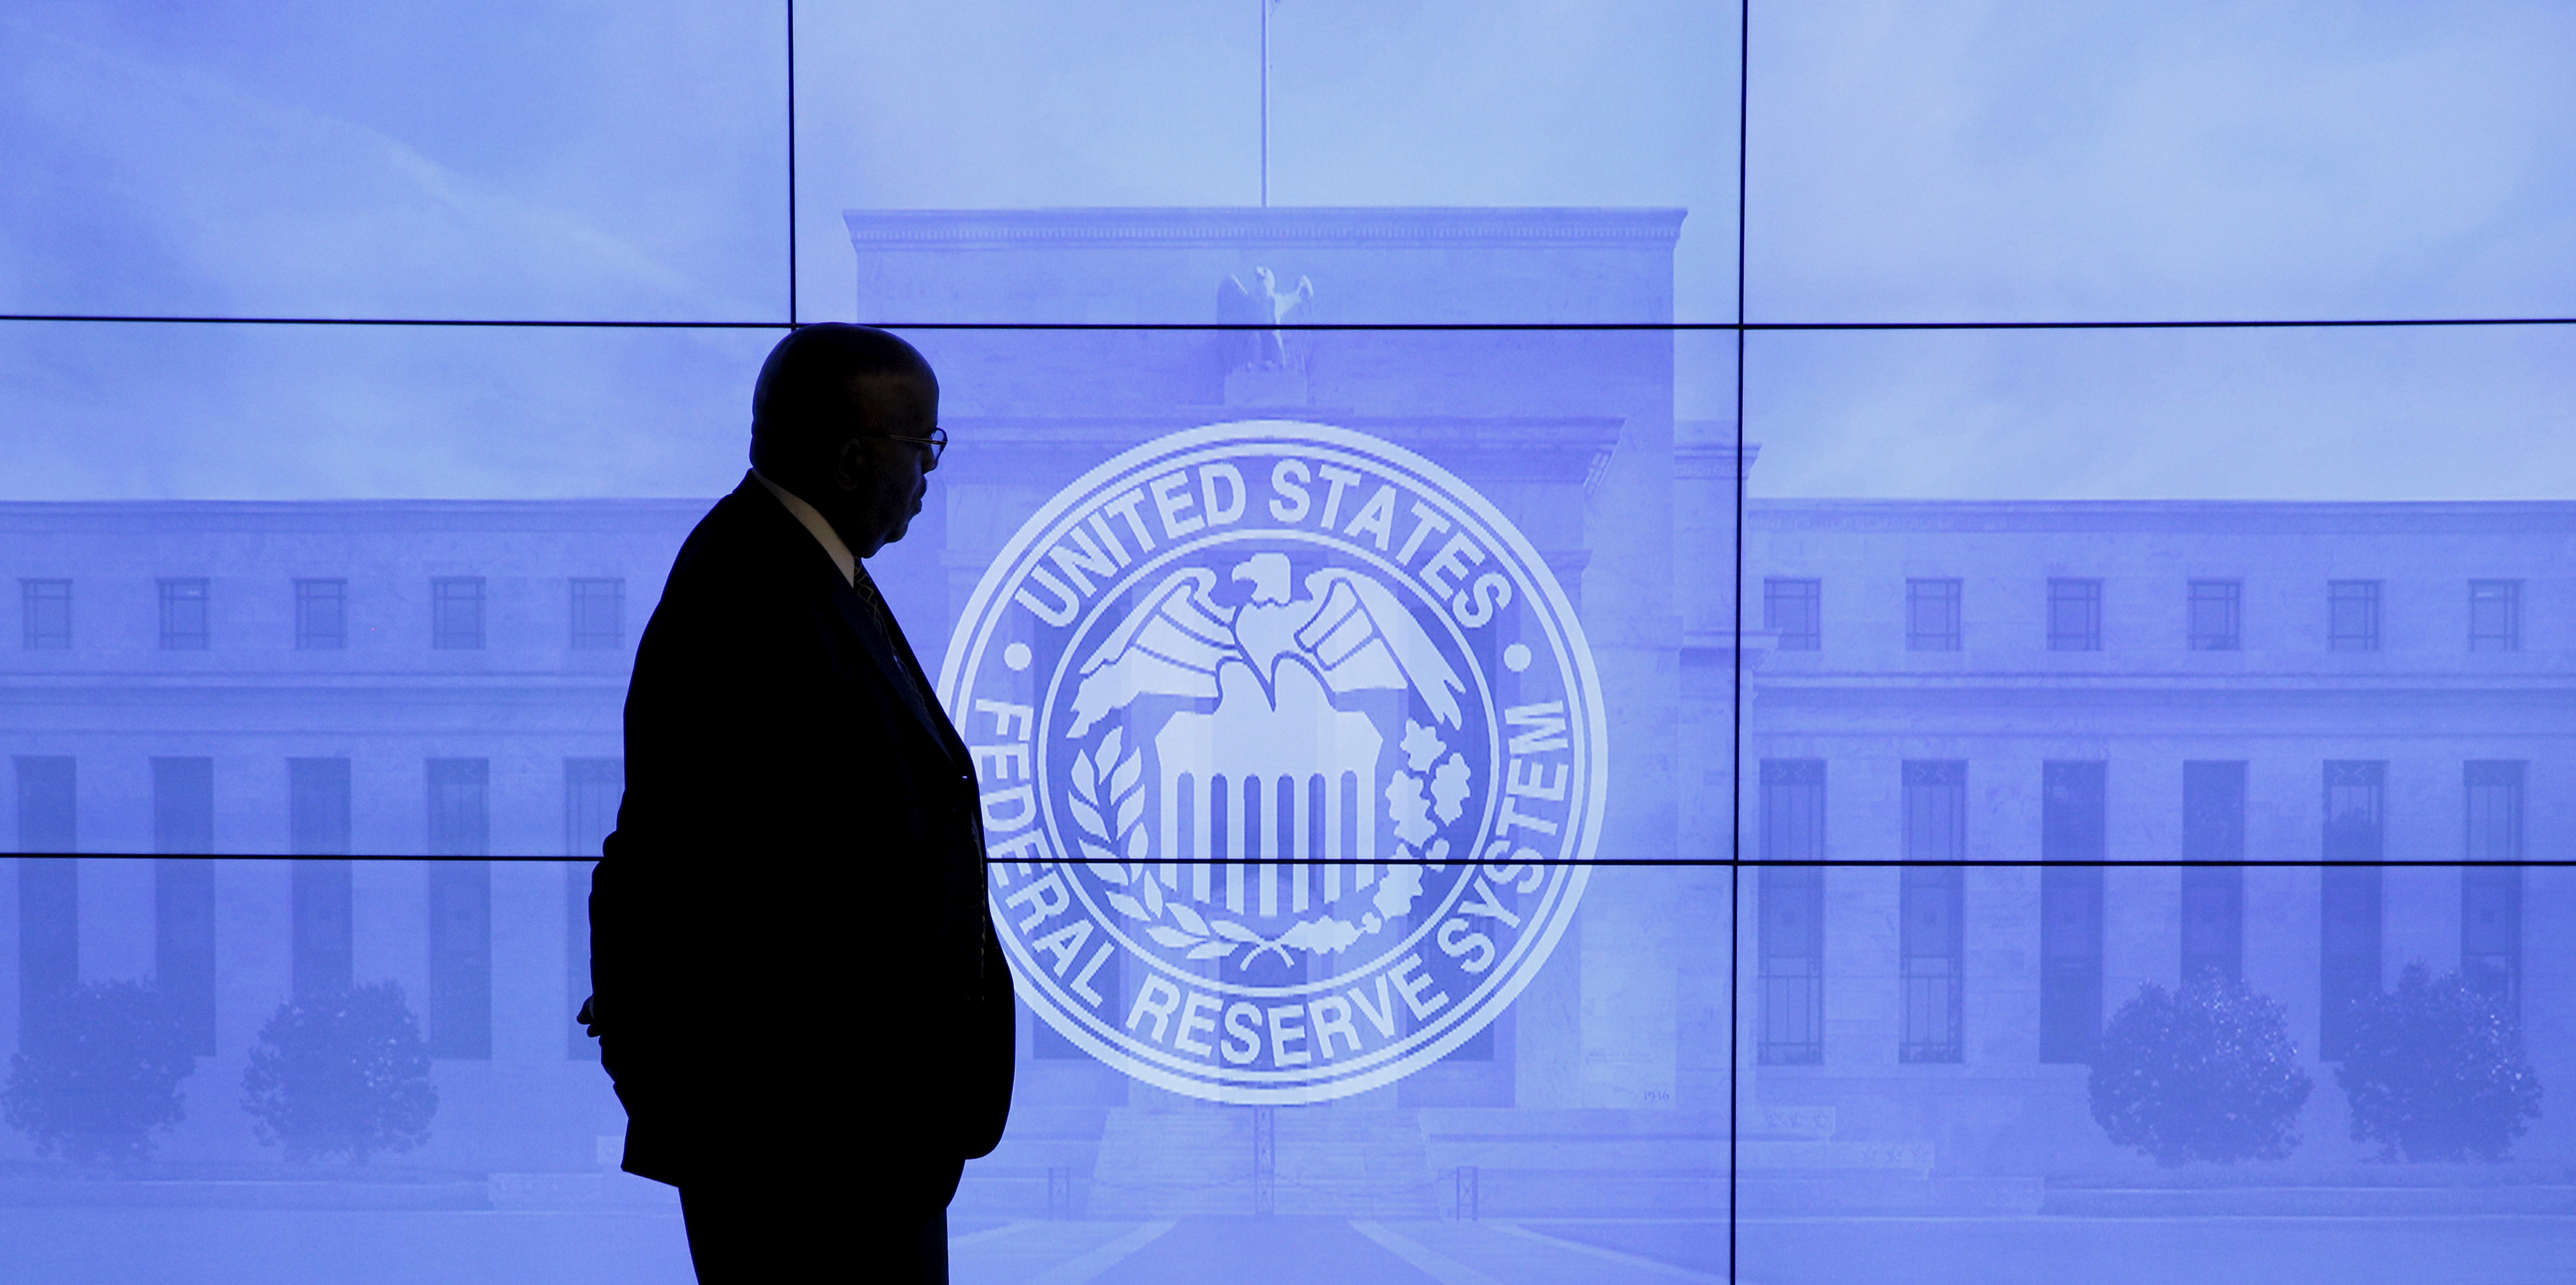 A security guard walks in front of an image of the Federal Reserve following the two-day Federal Open Market Committee (FOMC) policy meeting in Washington, DC, U.S. on March 16, 2016. REUTERS/Kevin Lamarque/Files